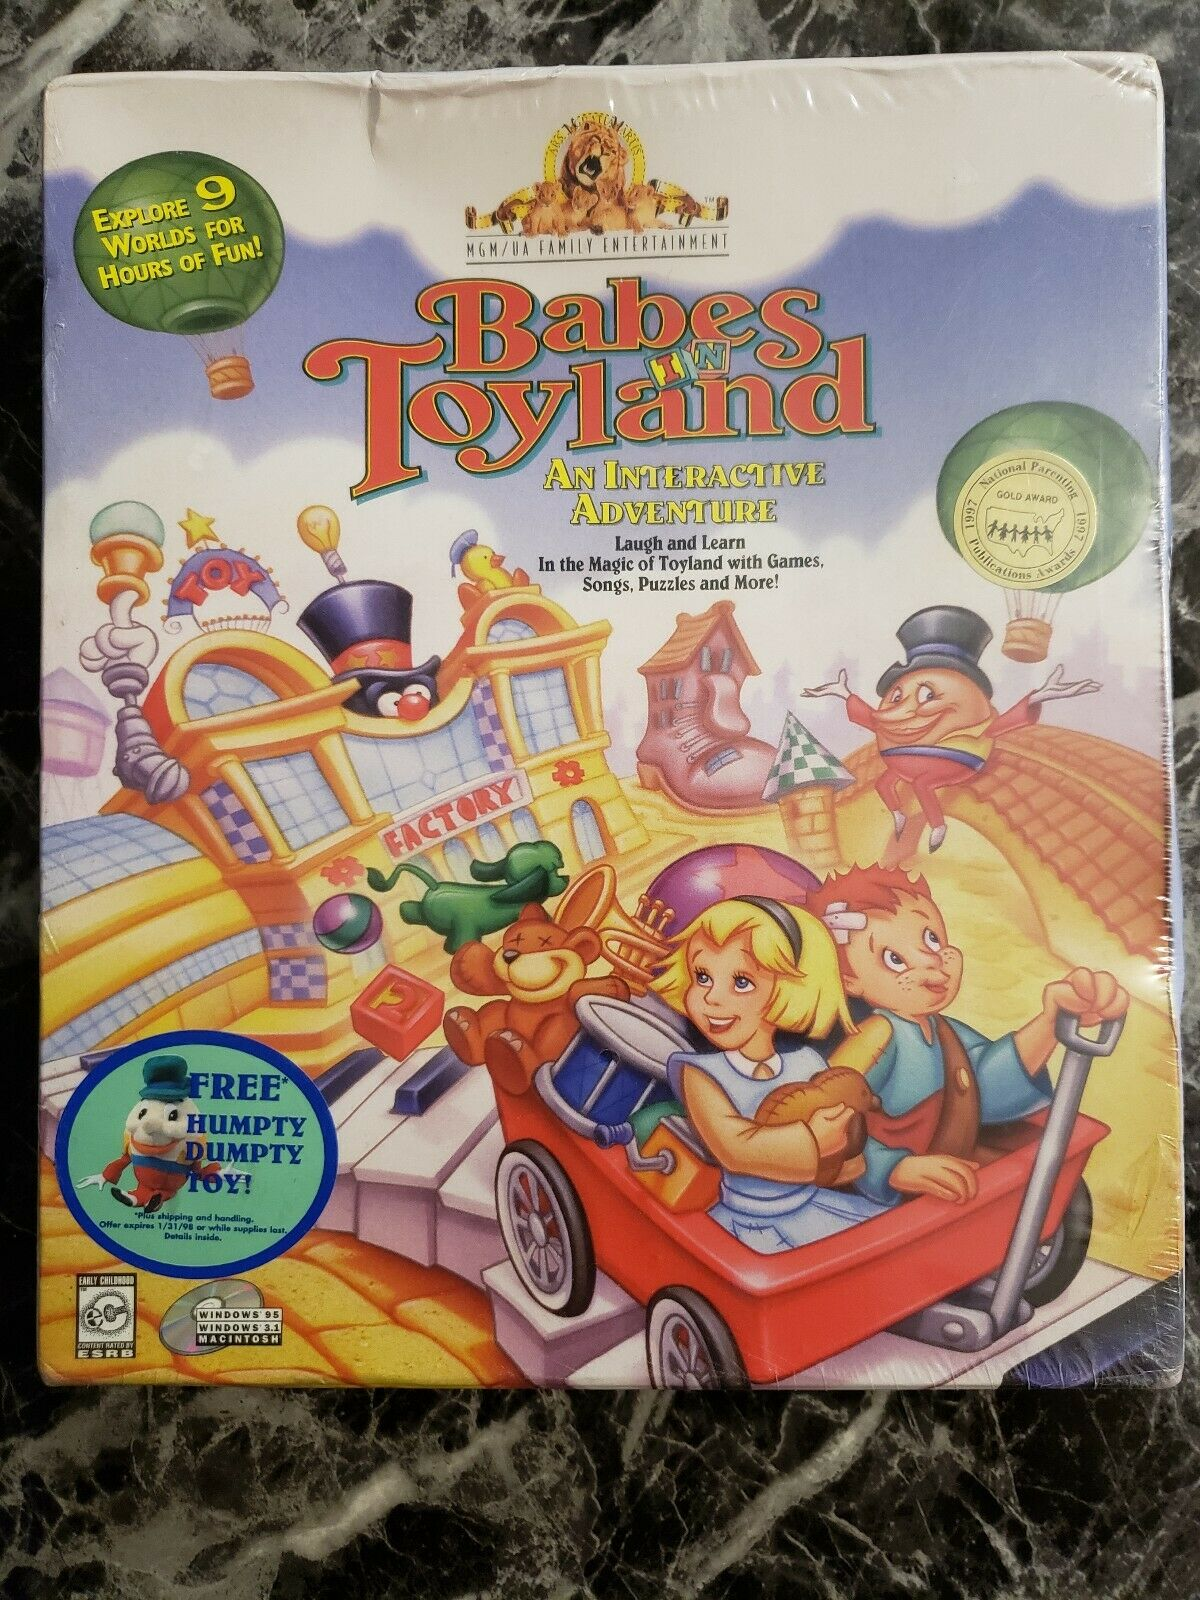 Free Babes Games babes in toyland: an interactive adventure (windows/mac, 1997)